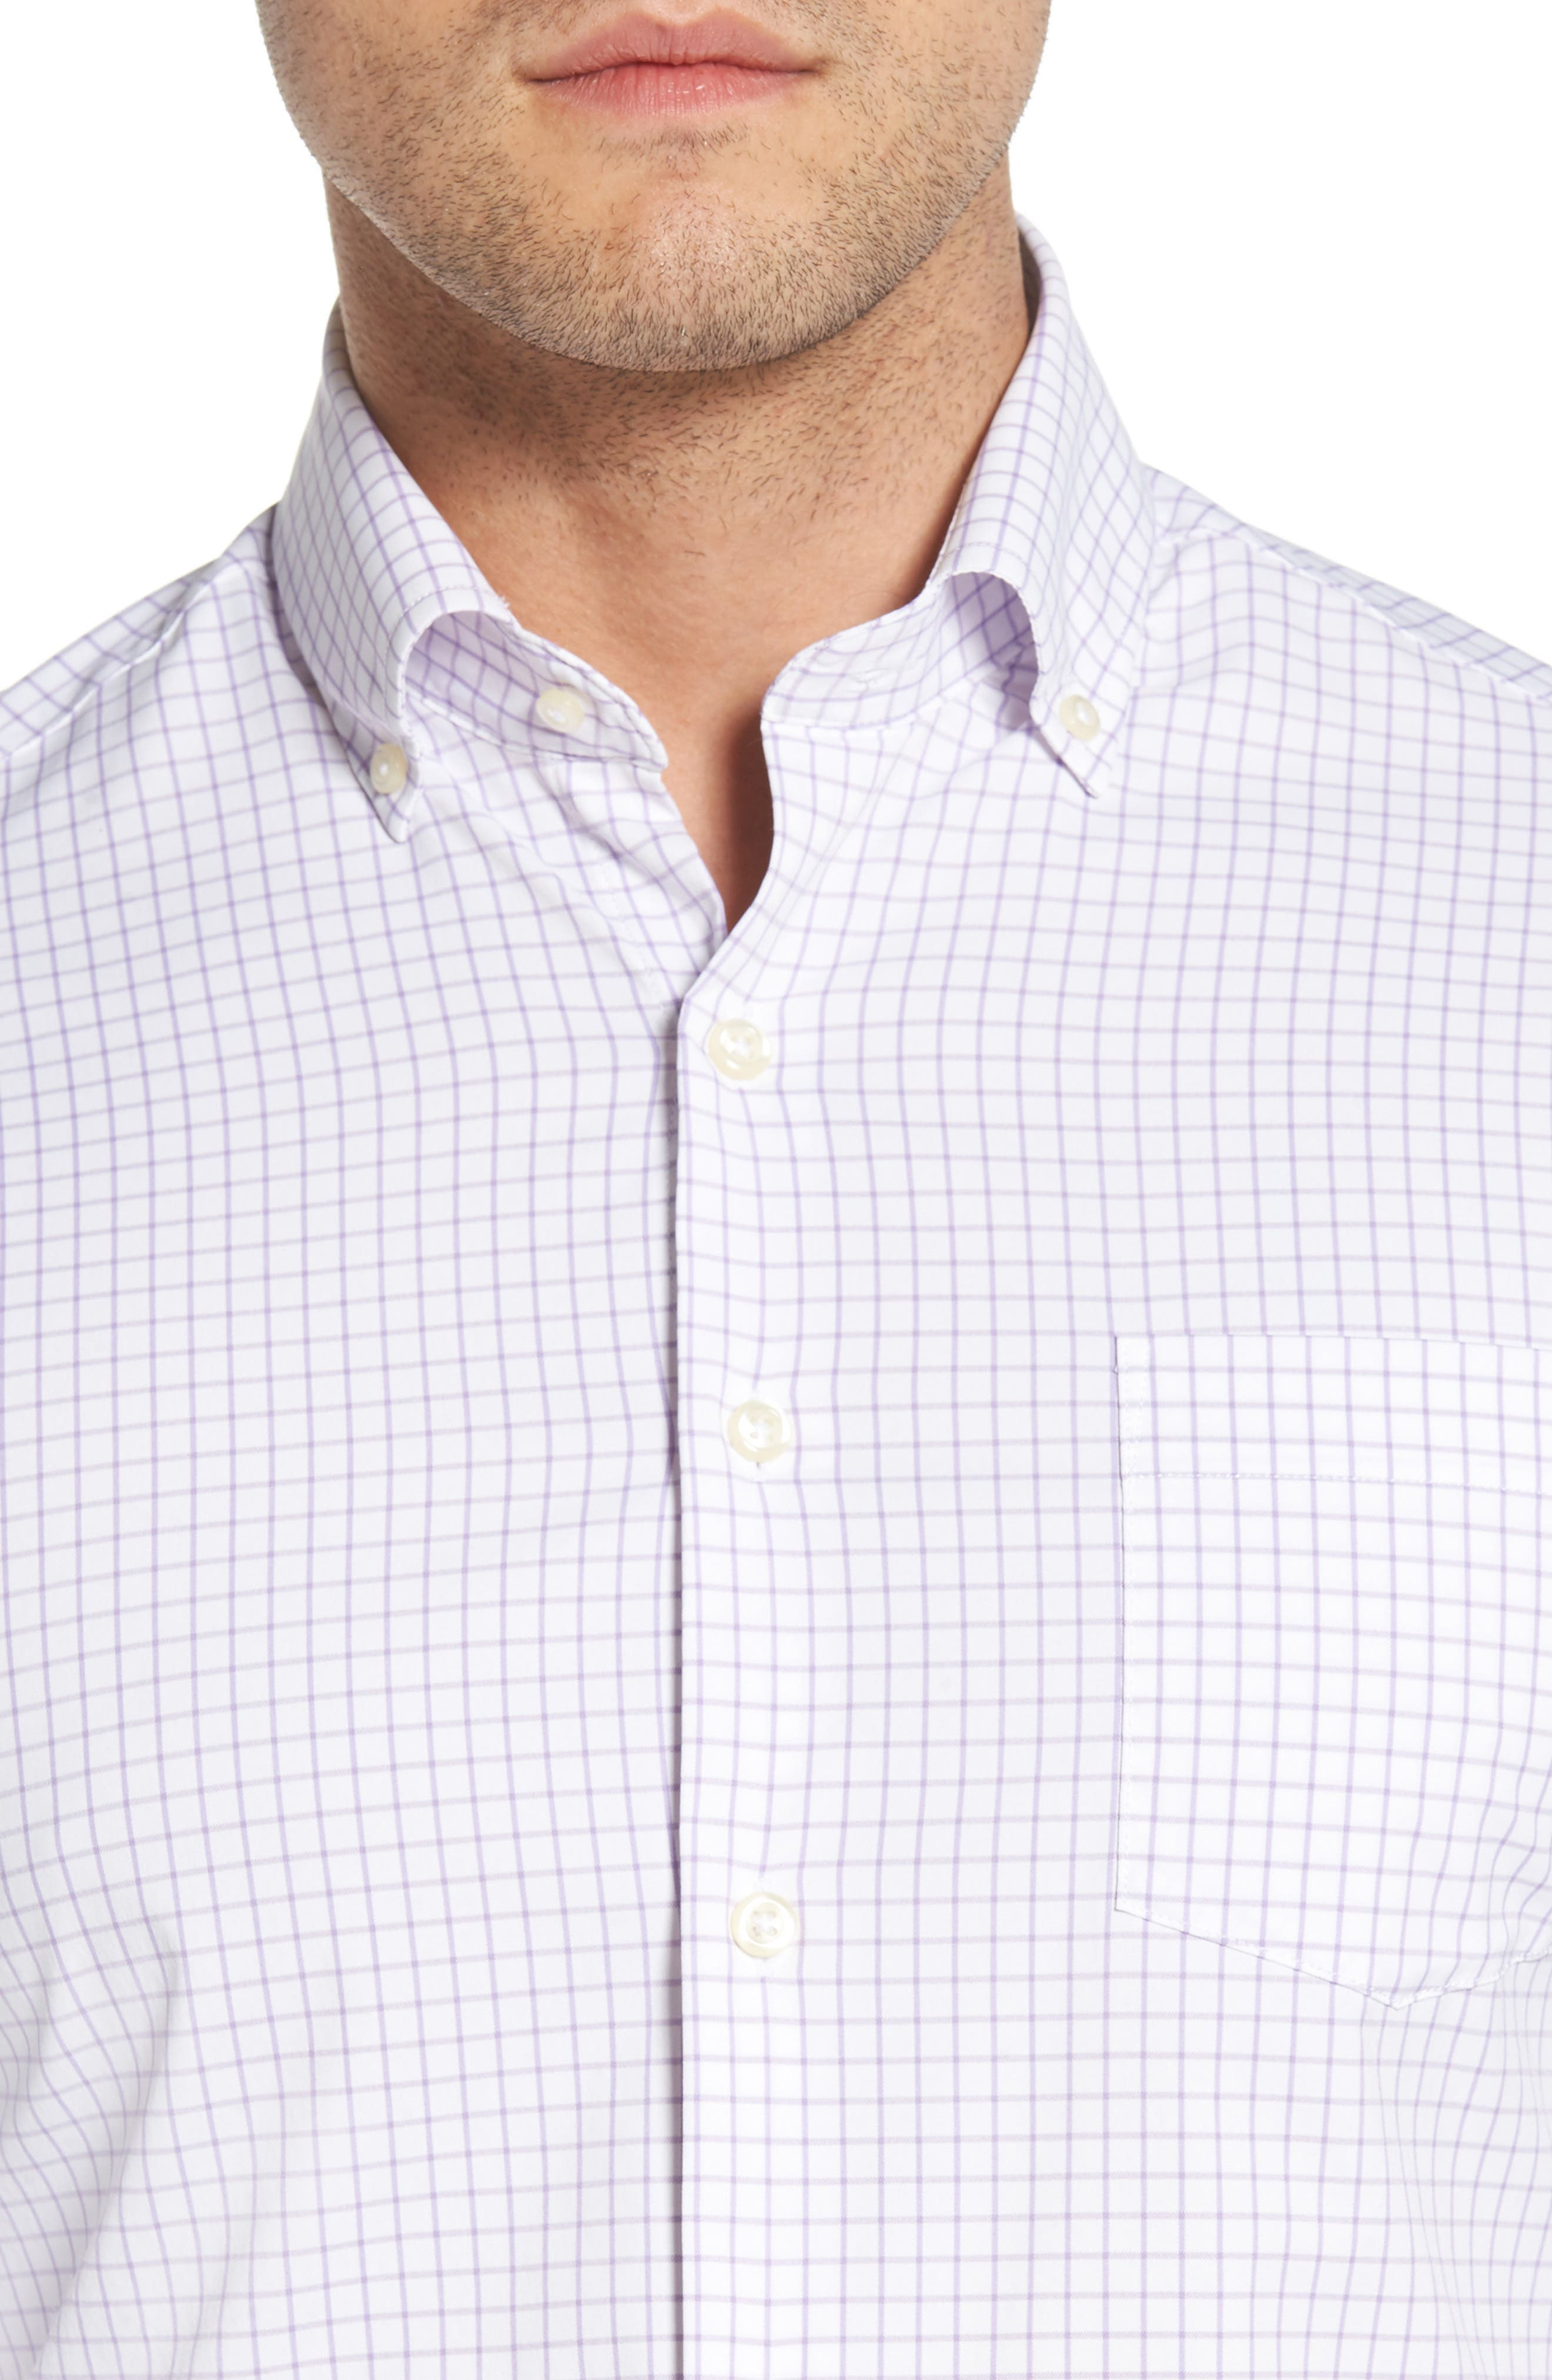 Captain Performance Tattersall Sport Shirt,                             Alternate thumbnail 2, color,                             Muscadine